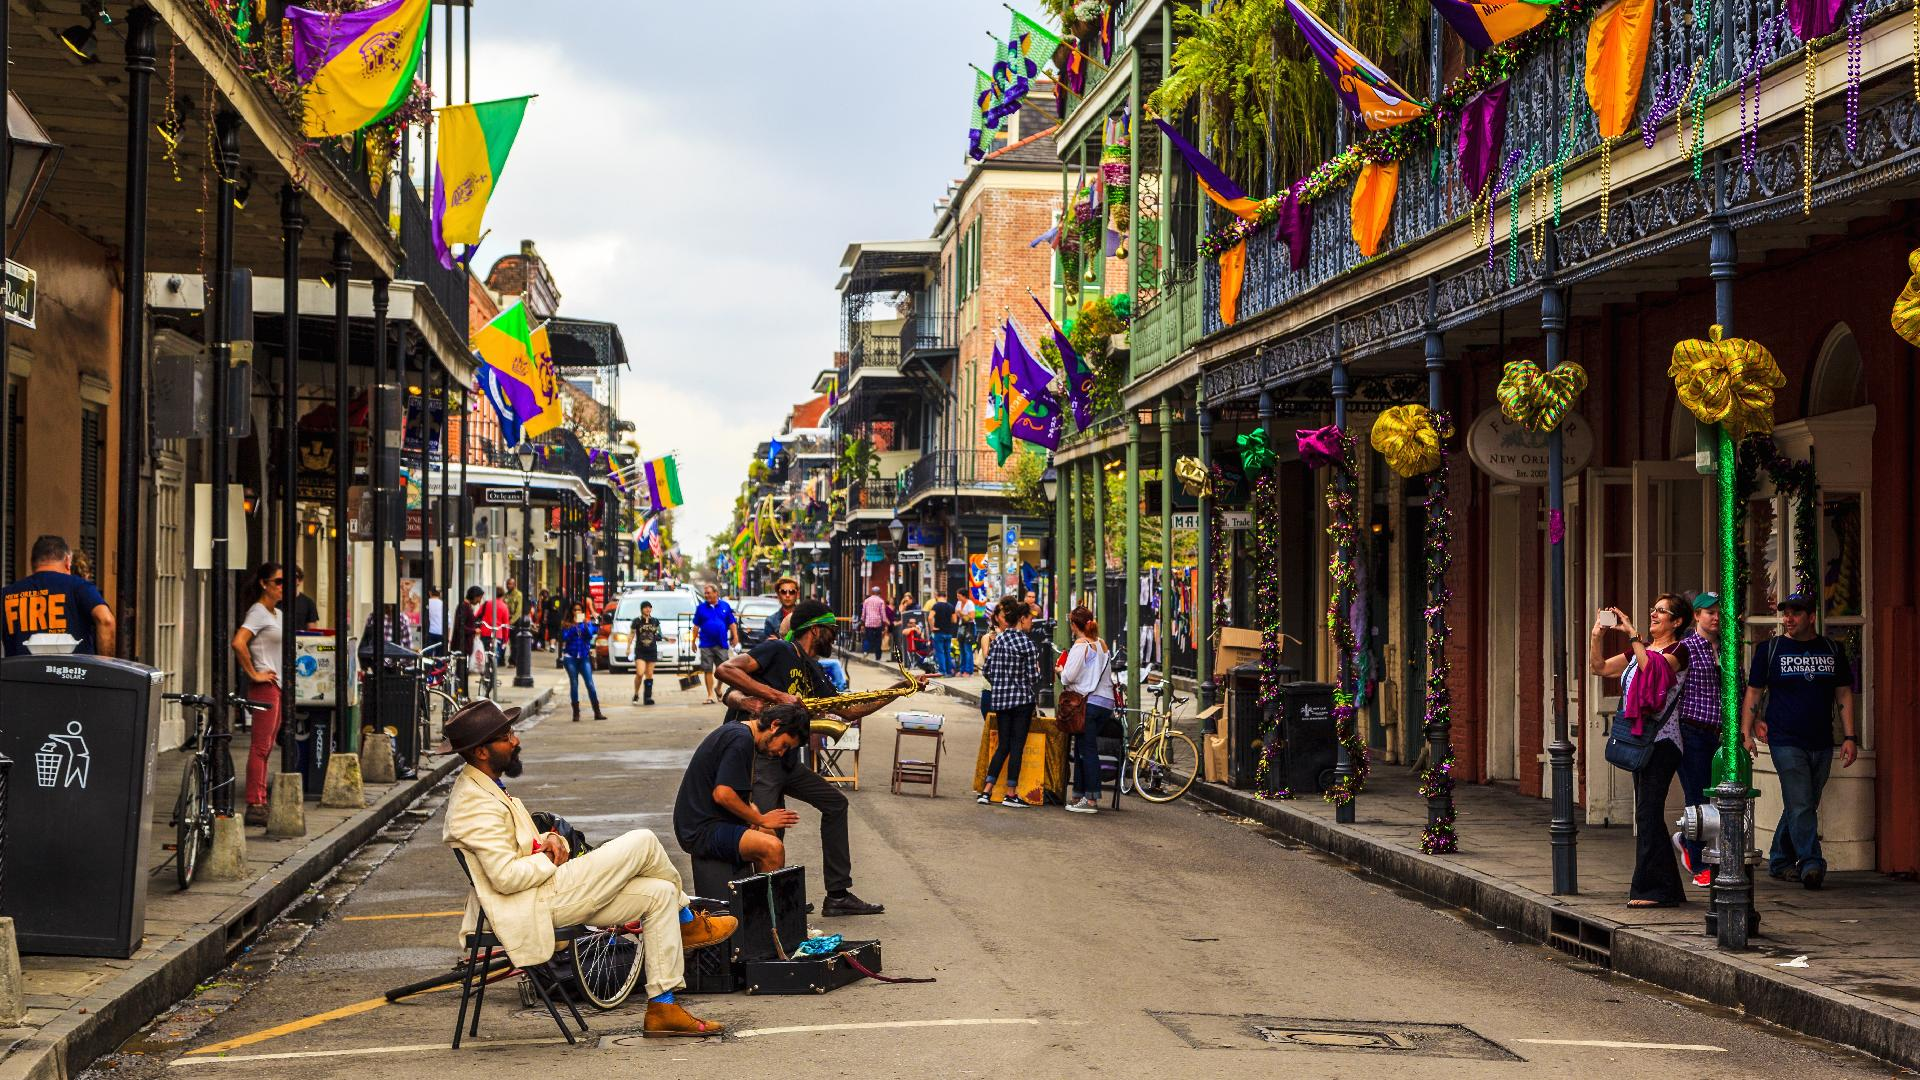 New Orleans festivals, from Mardi Gras to Jazz Fest - Lonely Planet